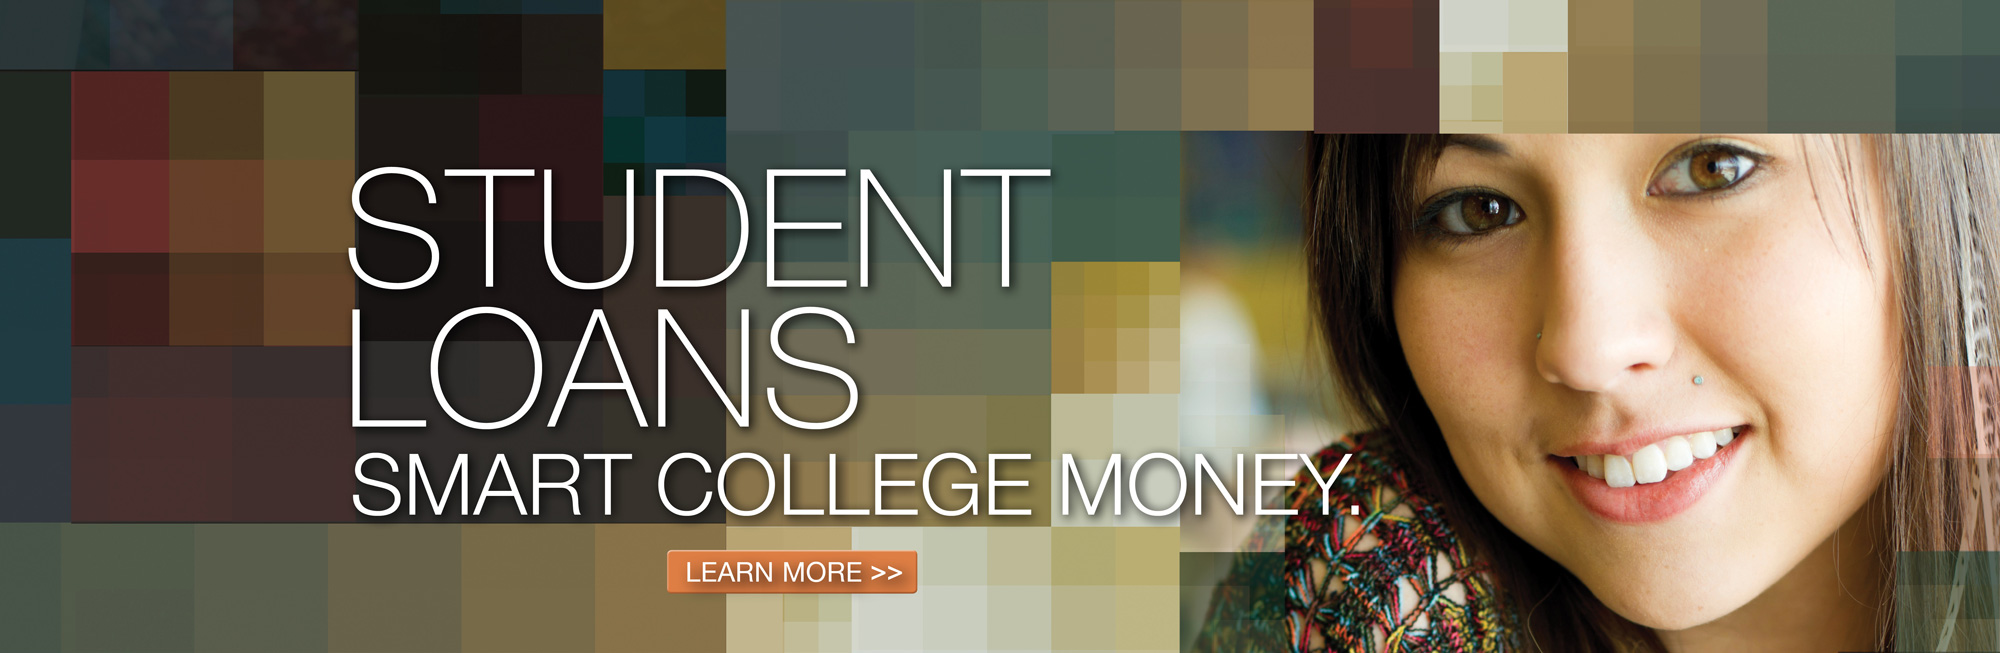 Student Loans. Borrow smart for college. Click to learn more.